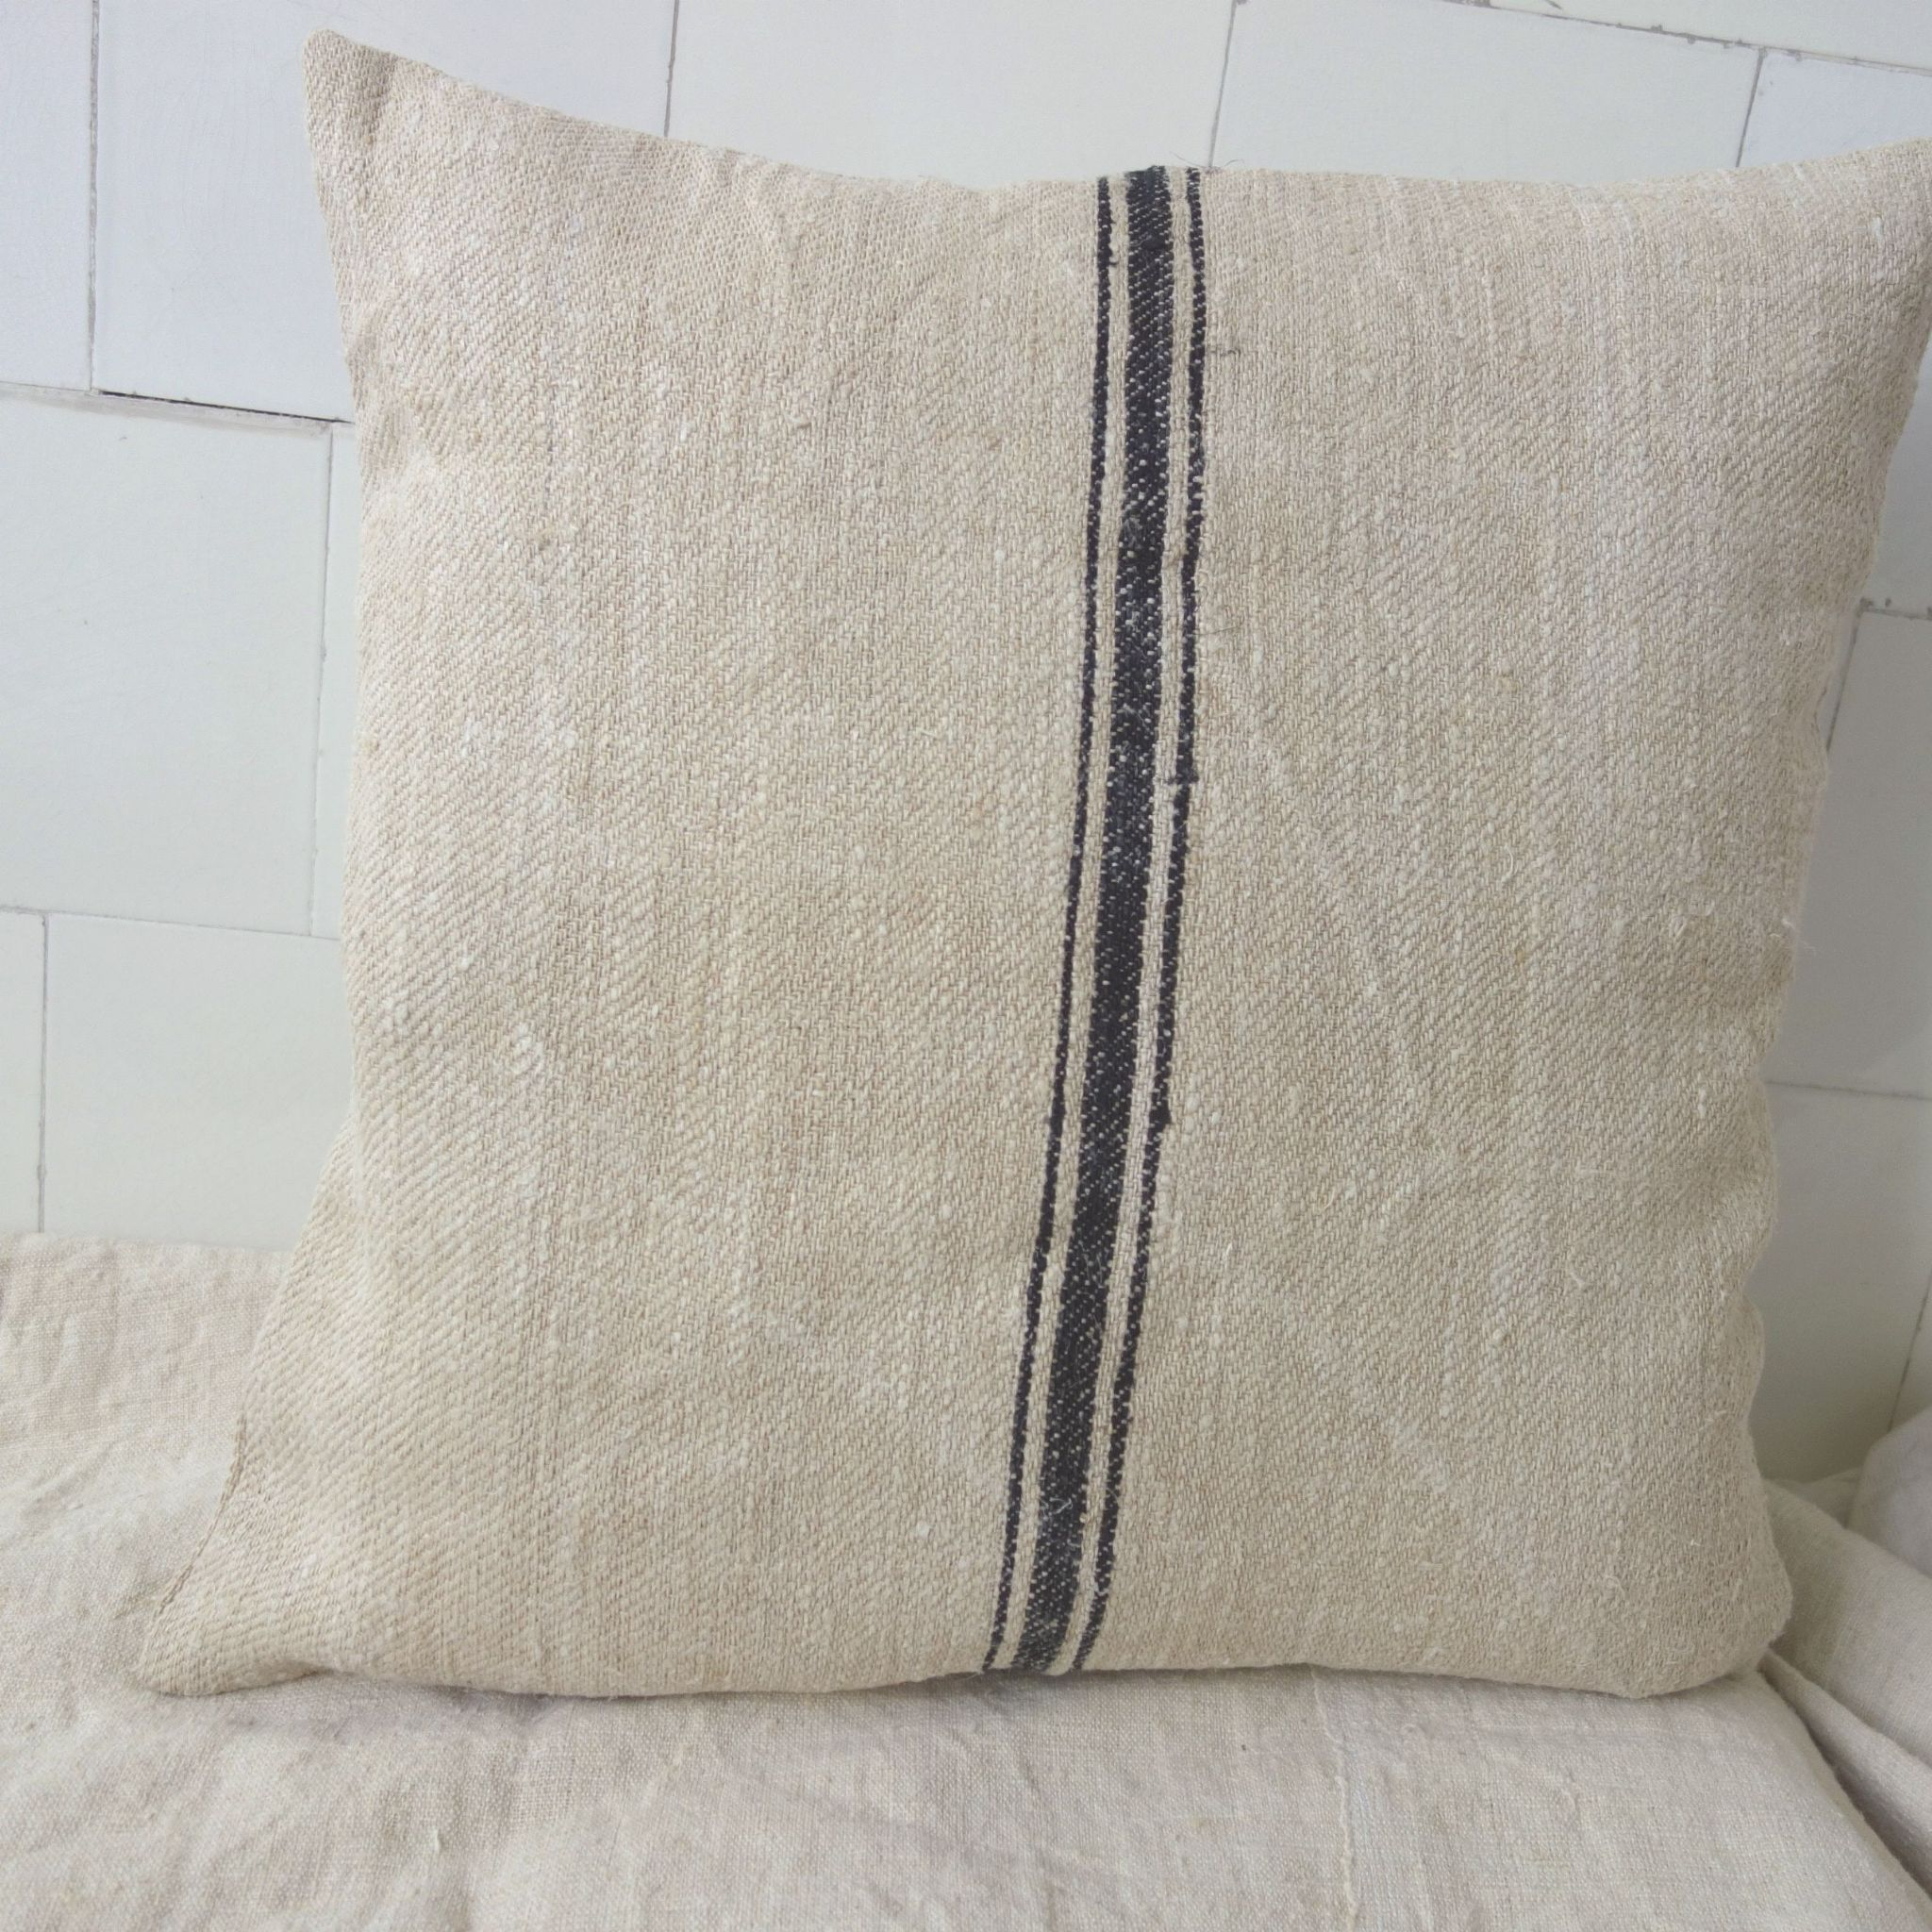 Vintage Linen Cushion Cover From Grain Sack Parna